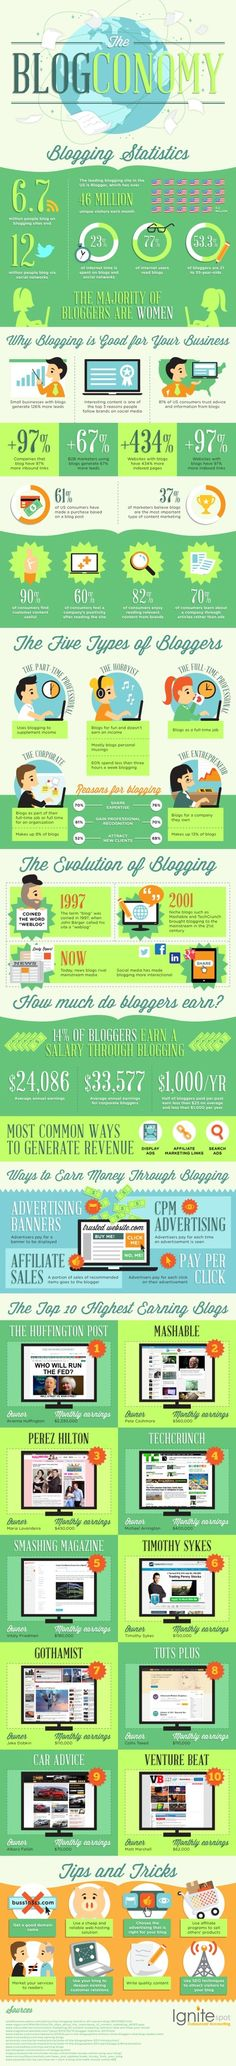 Check out these interesting blogging statistics: Infographic: The Blogconomy and Blogging Stats ...